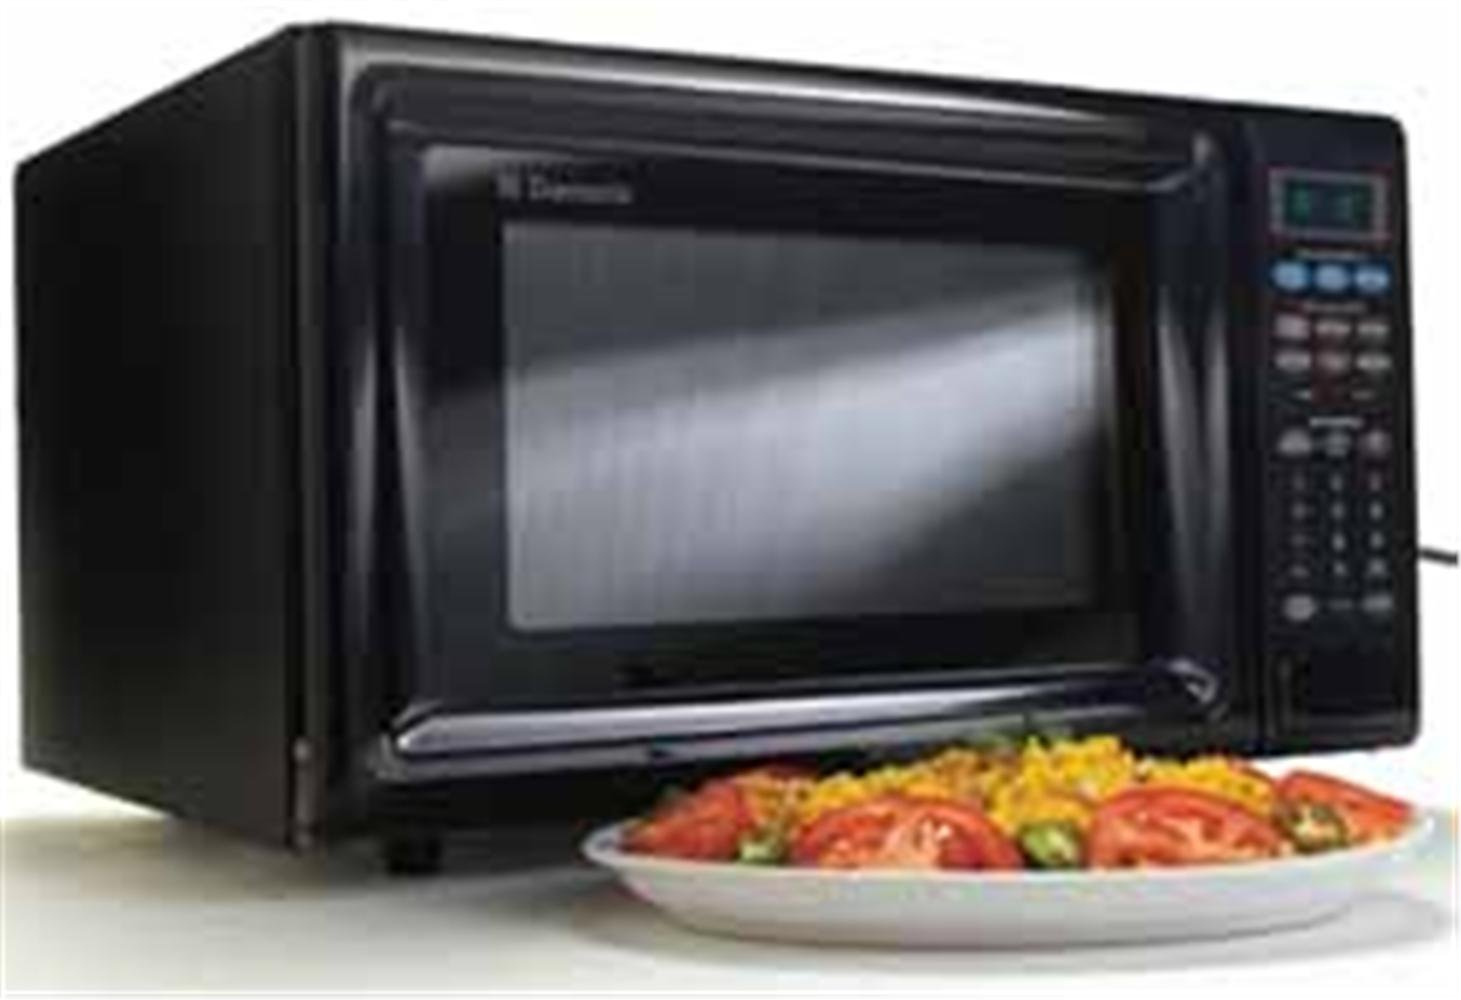 Amazon.com: Dometic CDMW12B Horno microondas negro: Automotive